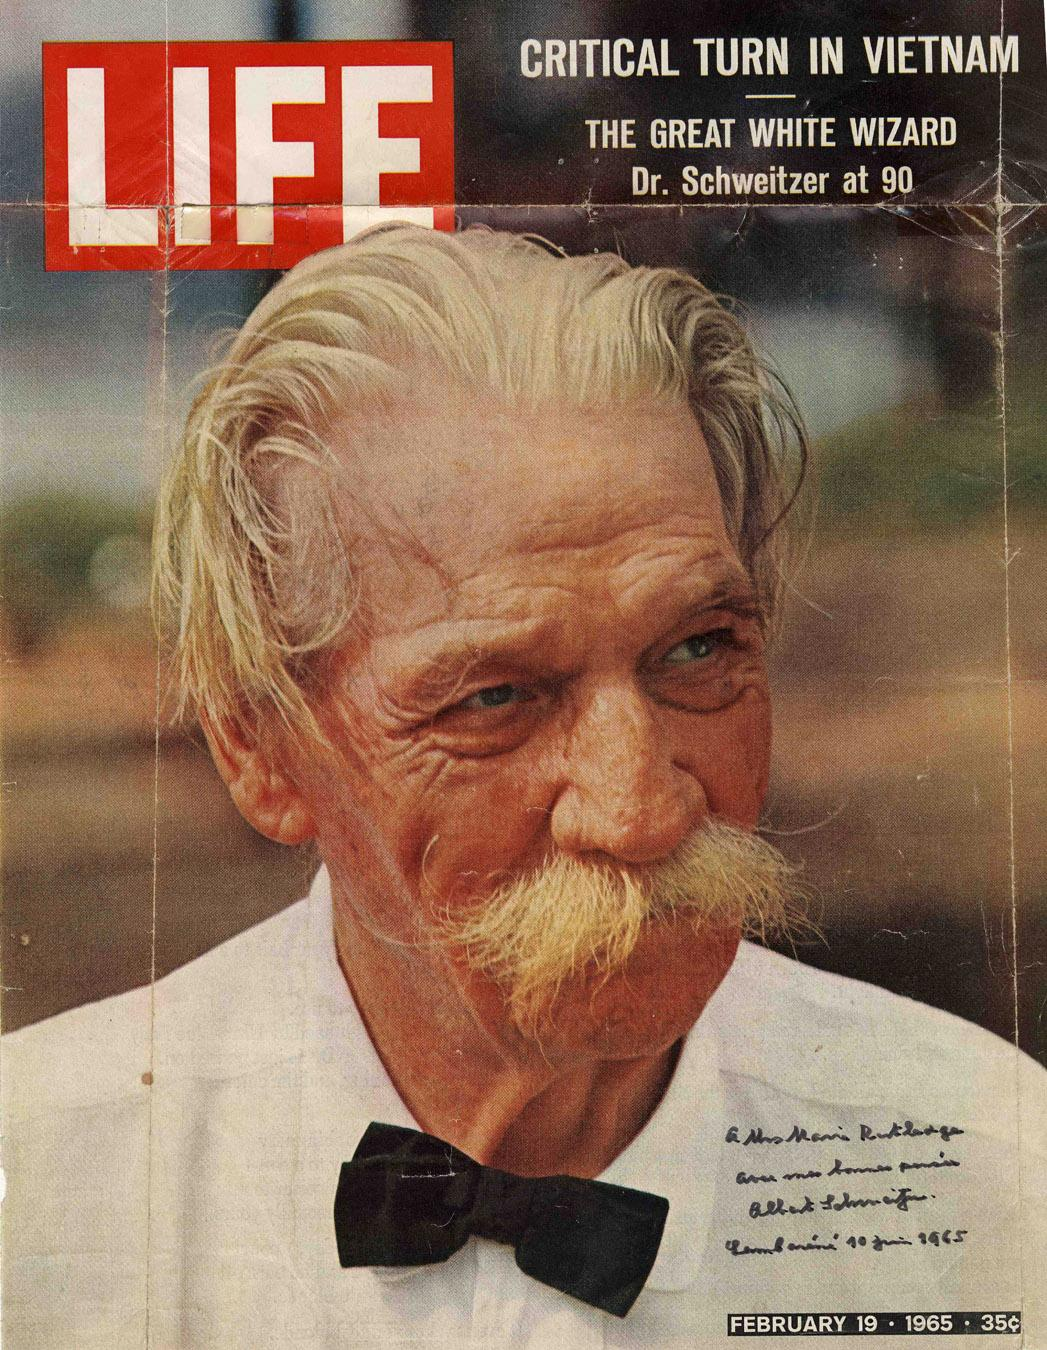 the story of the life of albert schweitzer Albert schweitzer (1875-1965) won the nobel peace prize in 1952 while still a young man he demonstrated extraordinary abilities in a wide range of pursuits, including science, theology, and music.